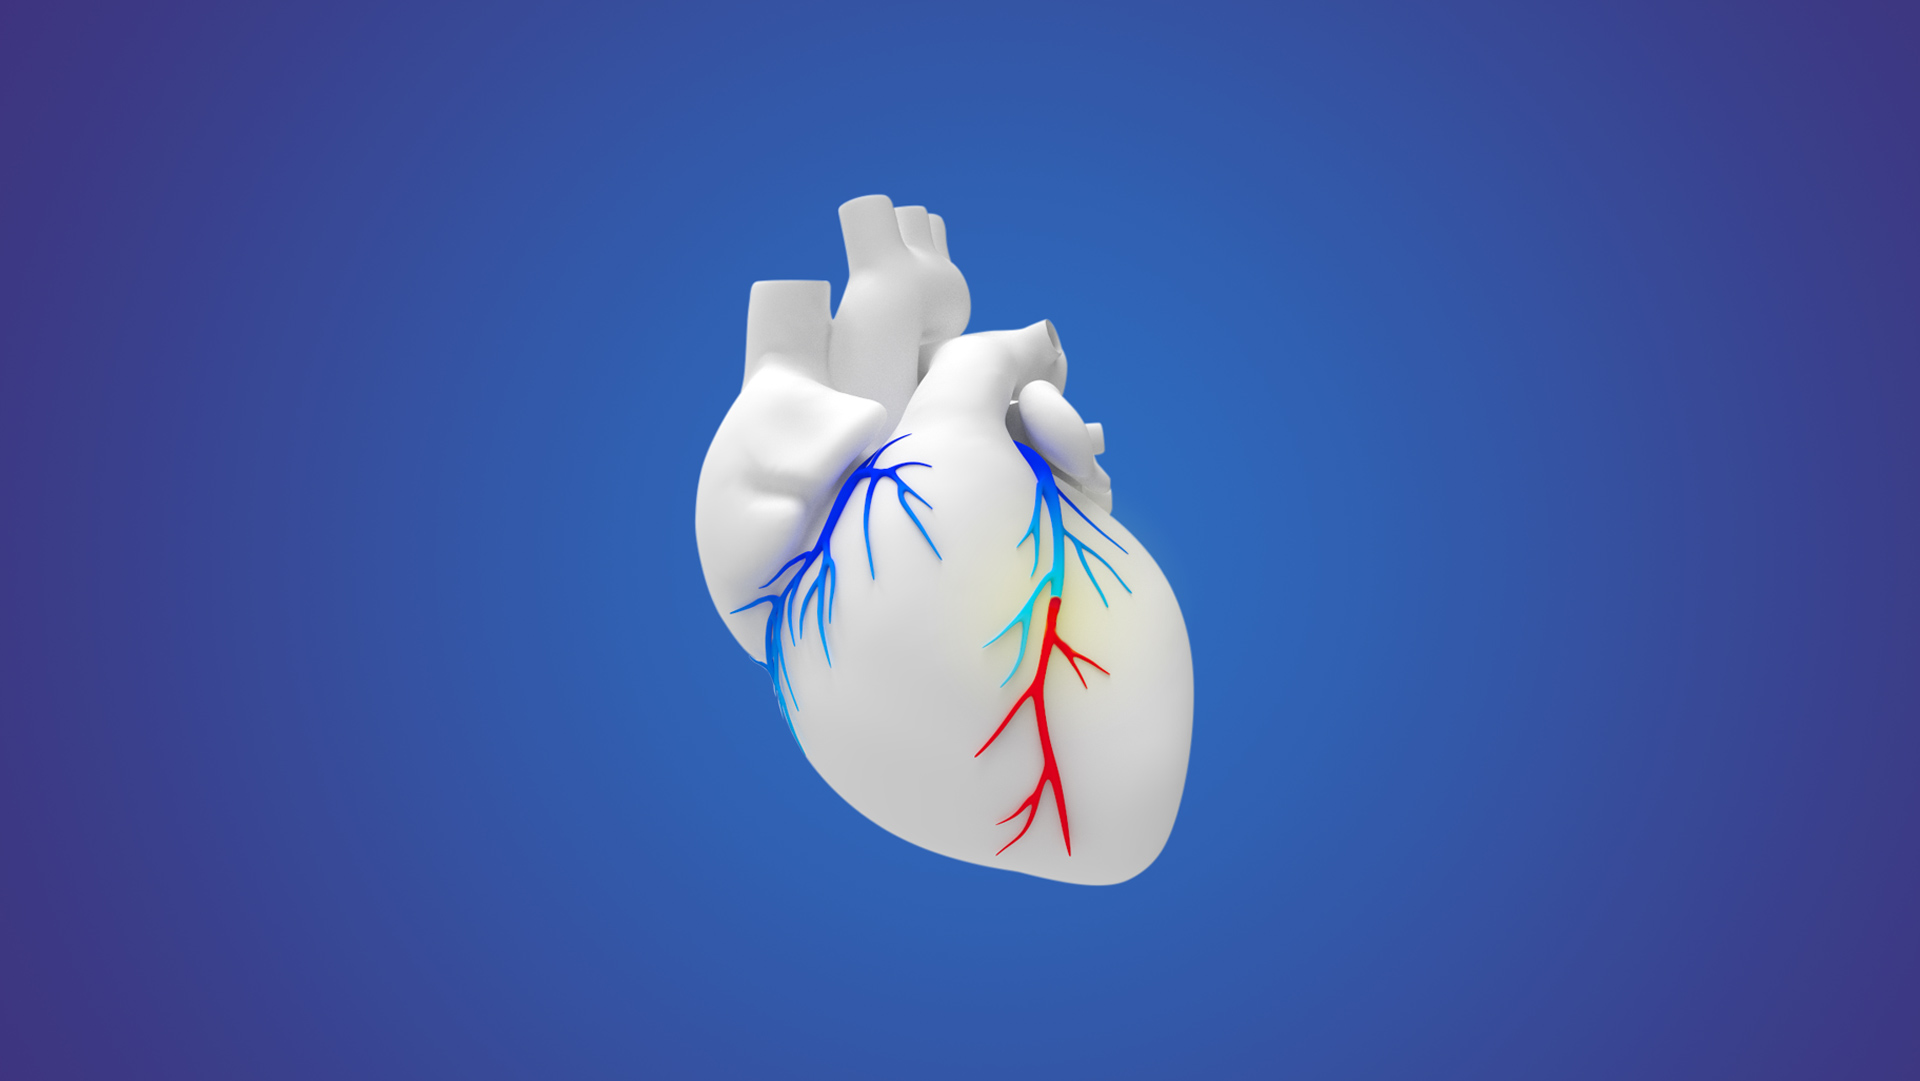 a white 3-D human heart with red and blue vessels on a blue background